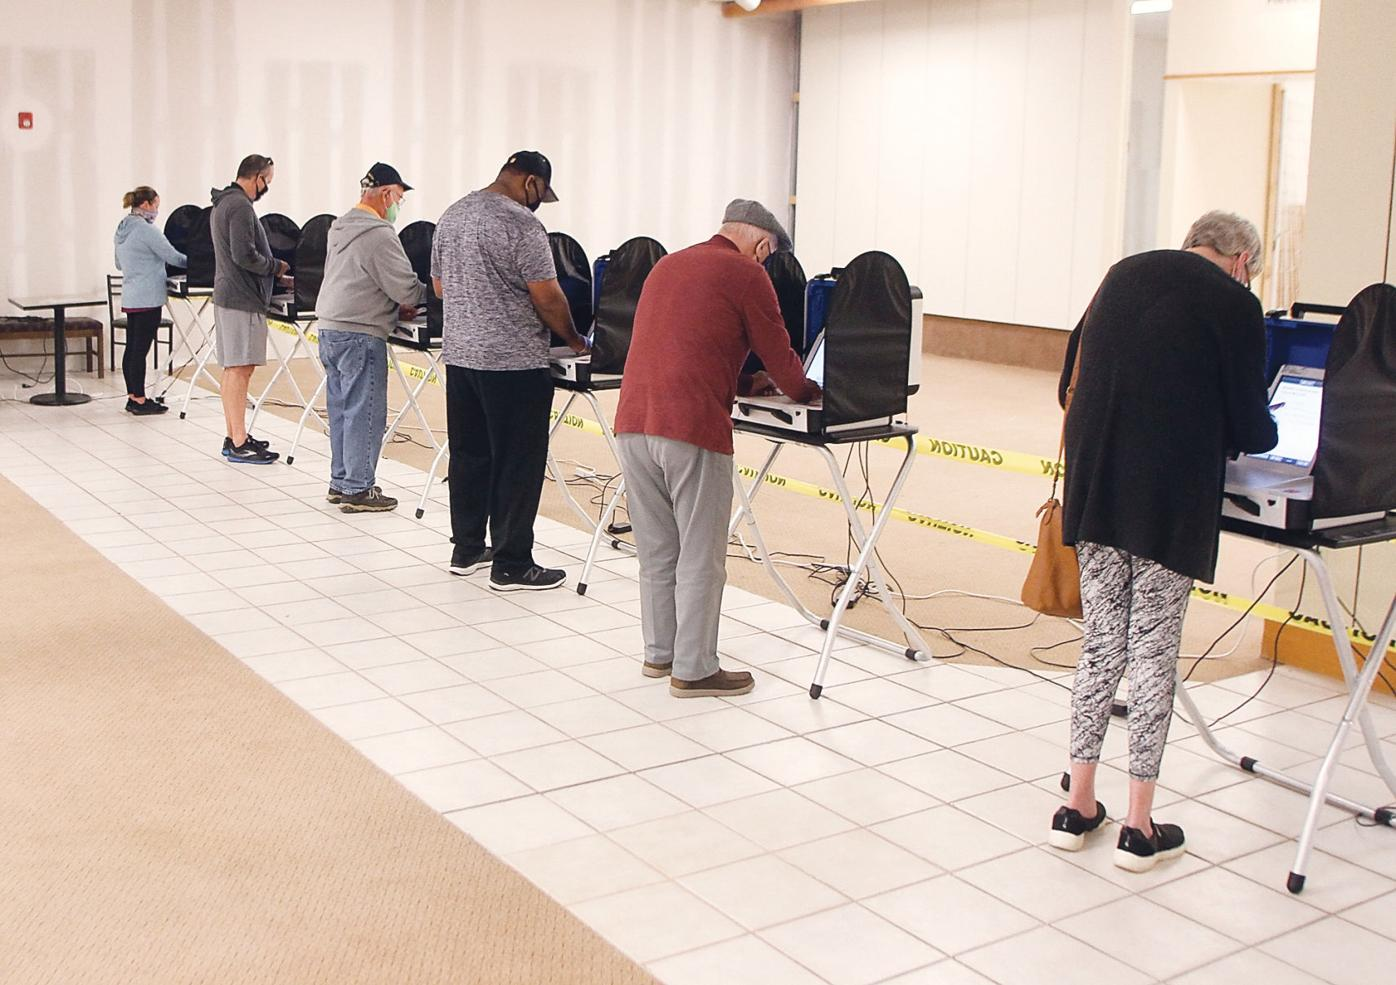 Voters cast their ballots at the Foothills Mall location